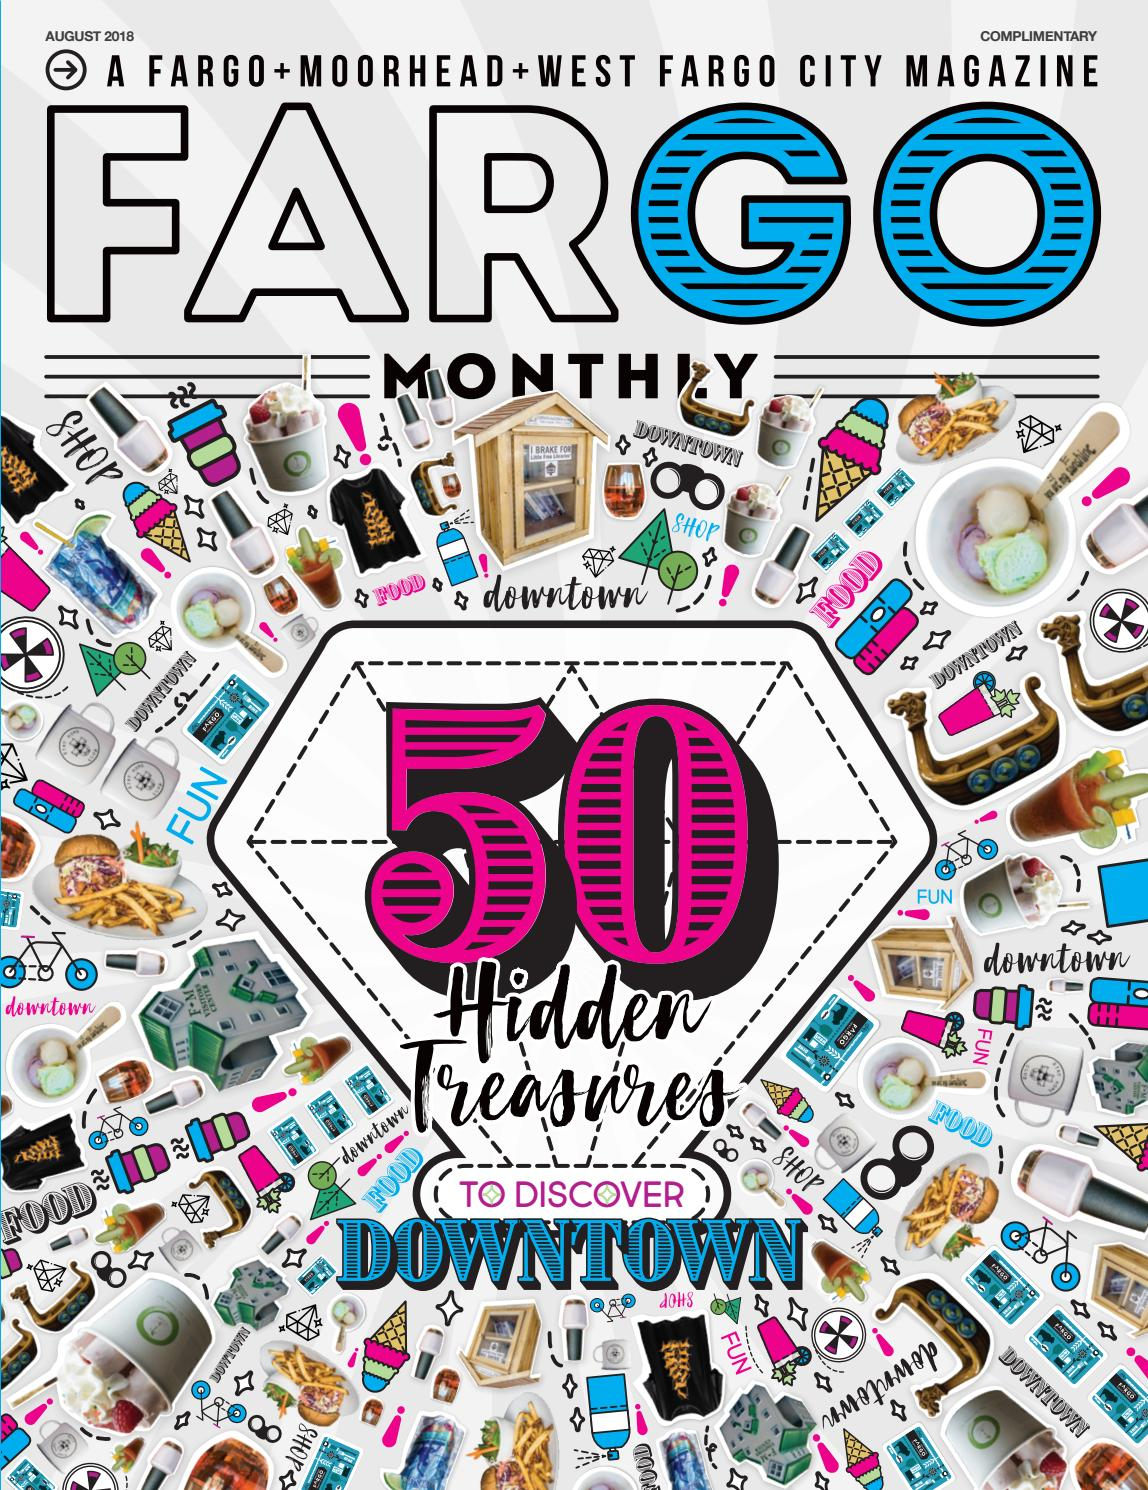 108fbea4014a Fargo Monthly August 2018 by Spotlight Media - issuu